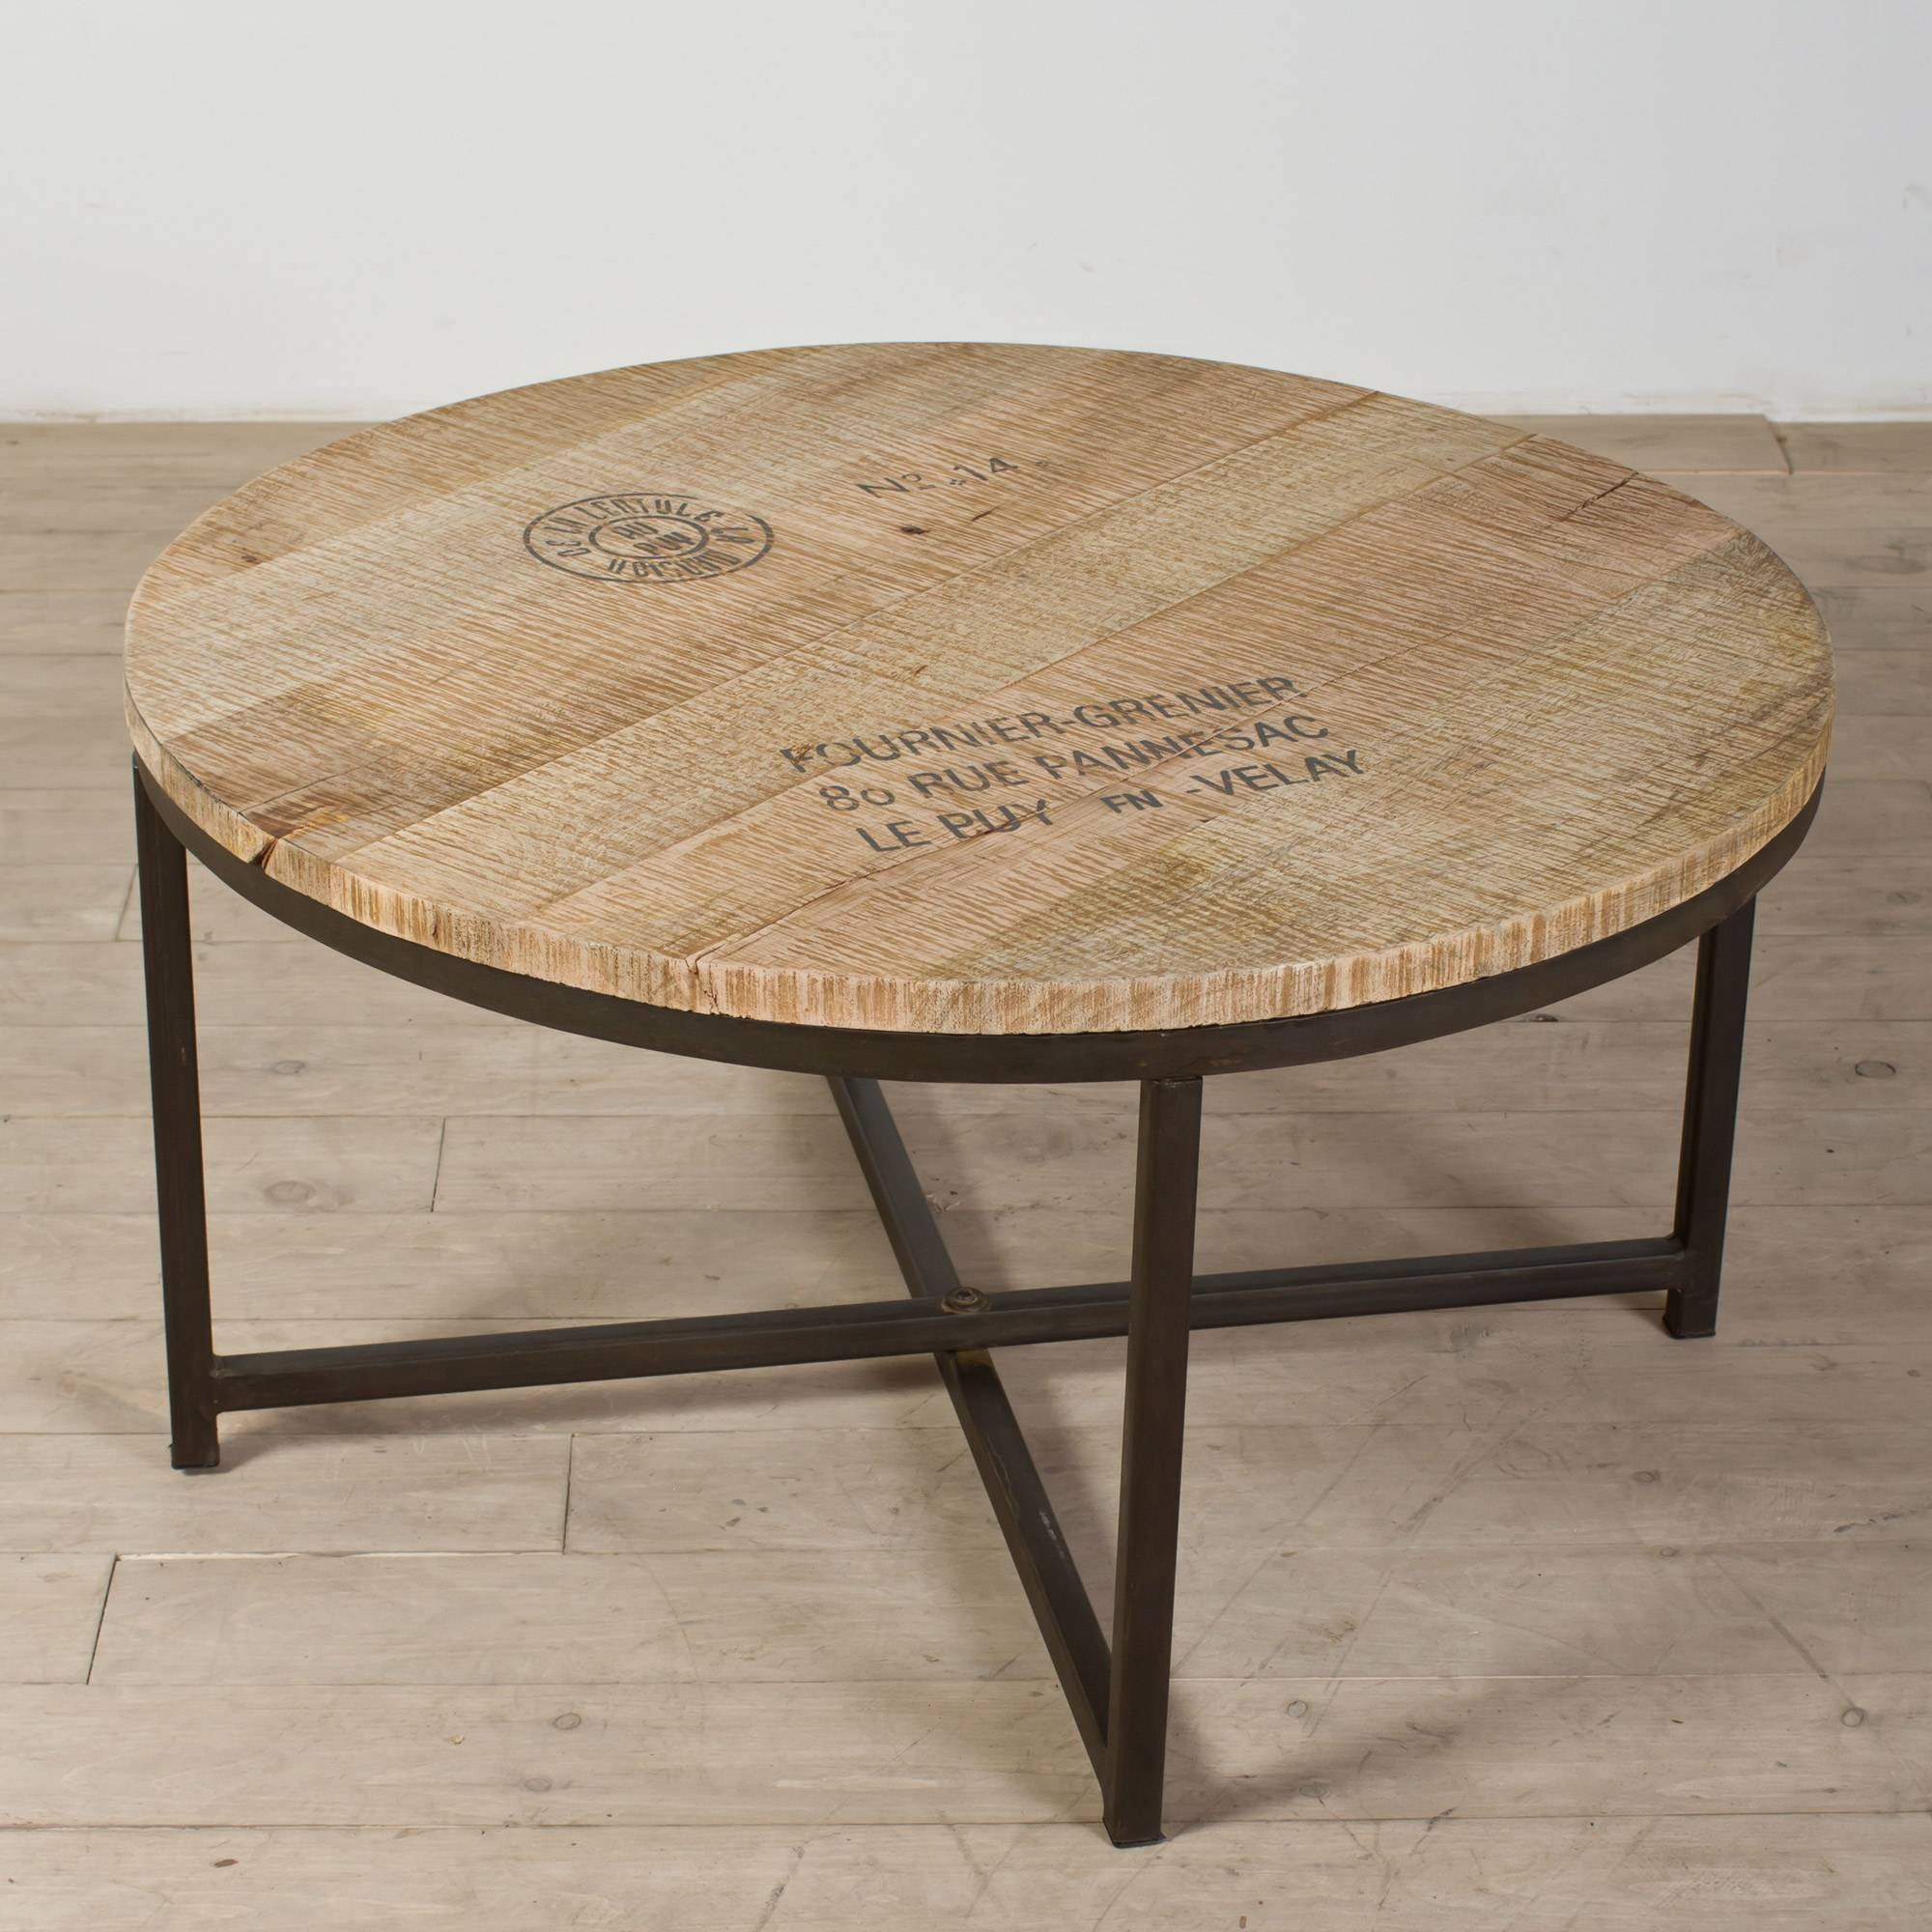 Coffee Tables Ideas: Awesome Round Wood And Metal Coffee Table Within Round Wood And Glass Coffee Tables (View 15 of 15)